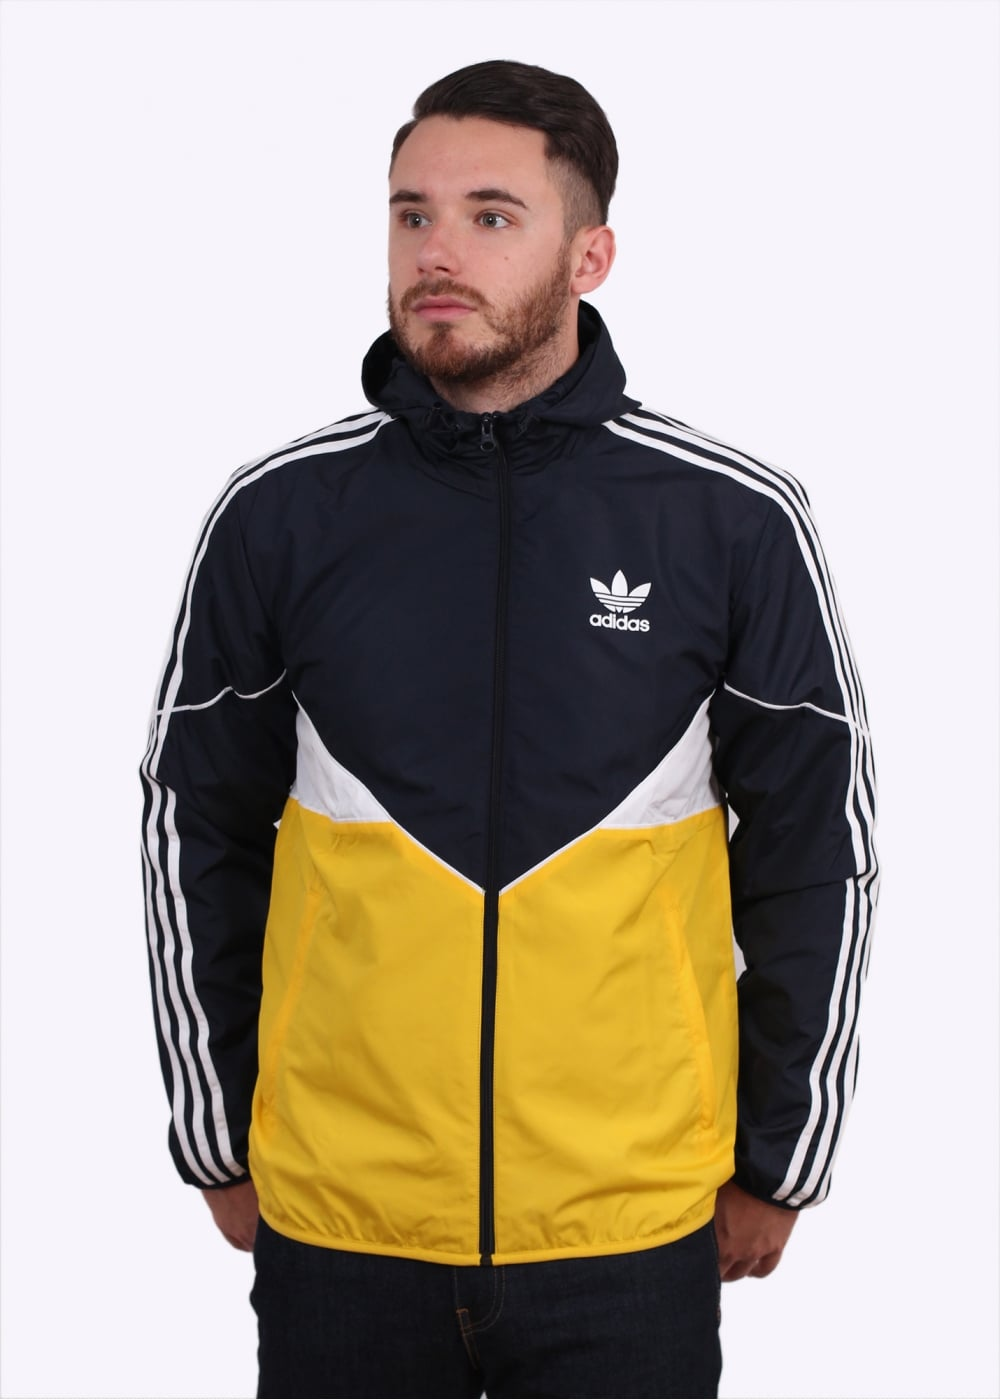 9b1e3a9f3 adidas Originals Apparel CRDO Windbreaker - Legend Ink - Triads Mens ...